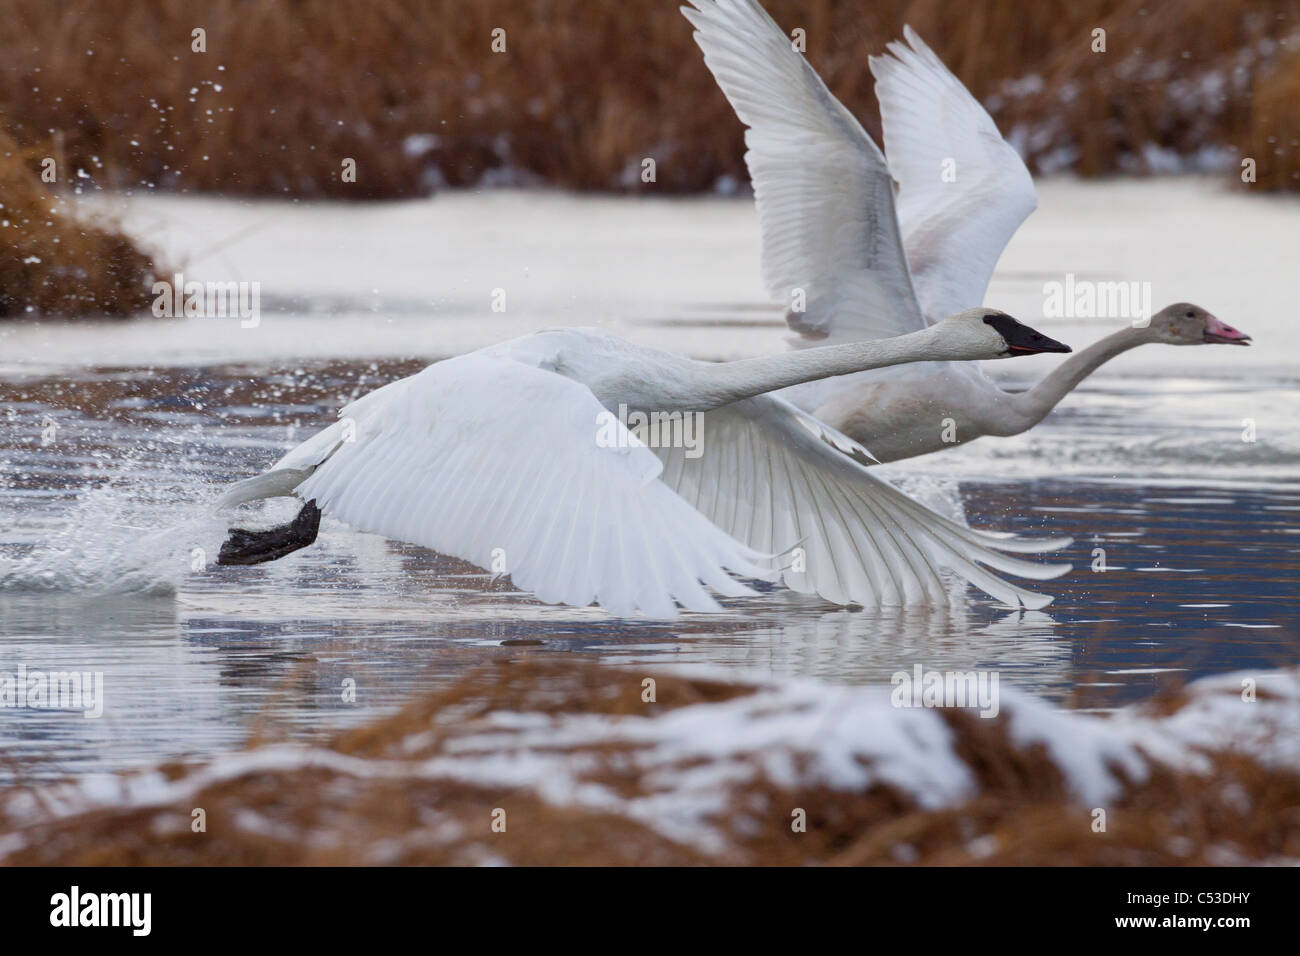 An adult and juvenile Trumpeter Swan take off from a pond near Girdwood, Southcentral Alaska, Autumn - Stock Image